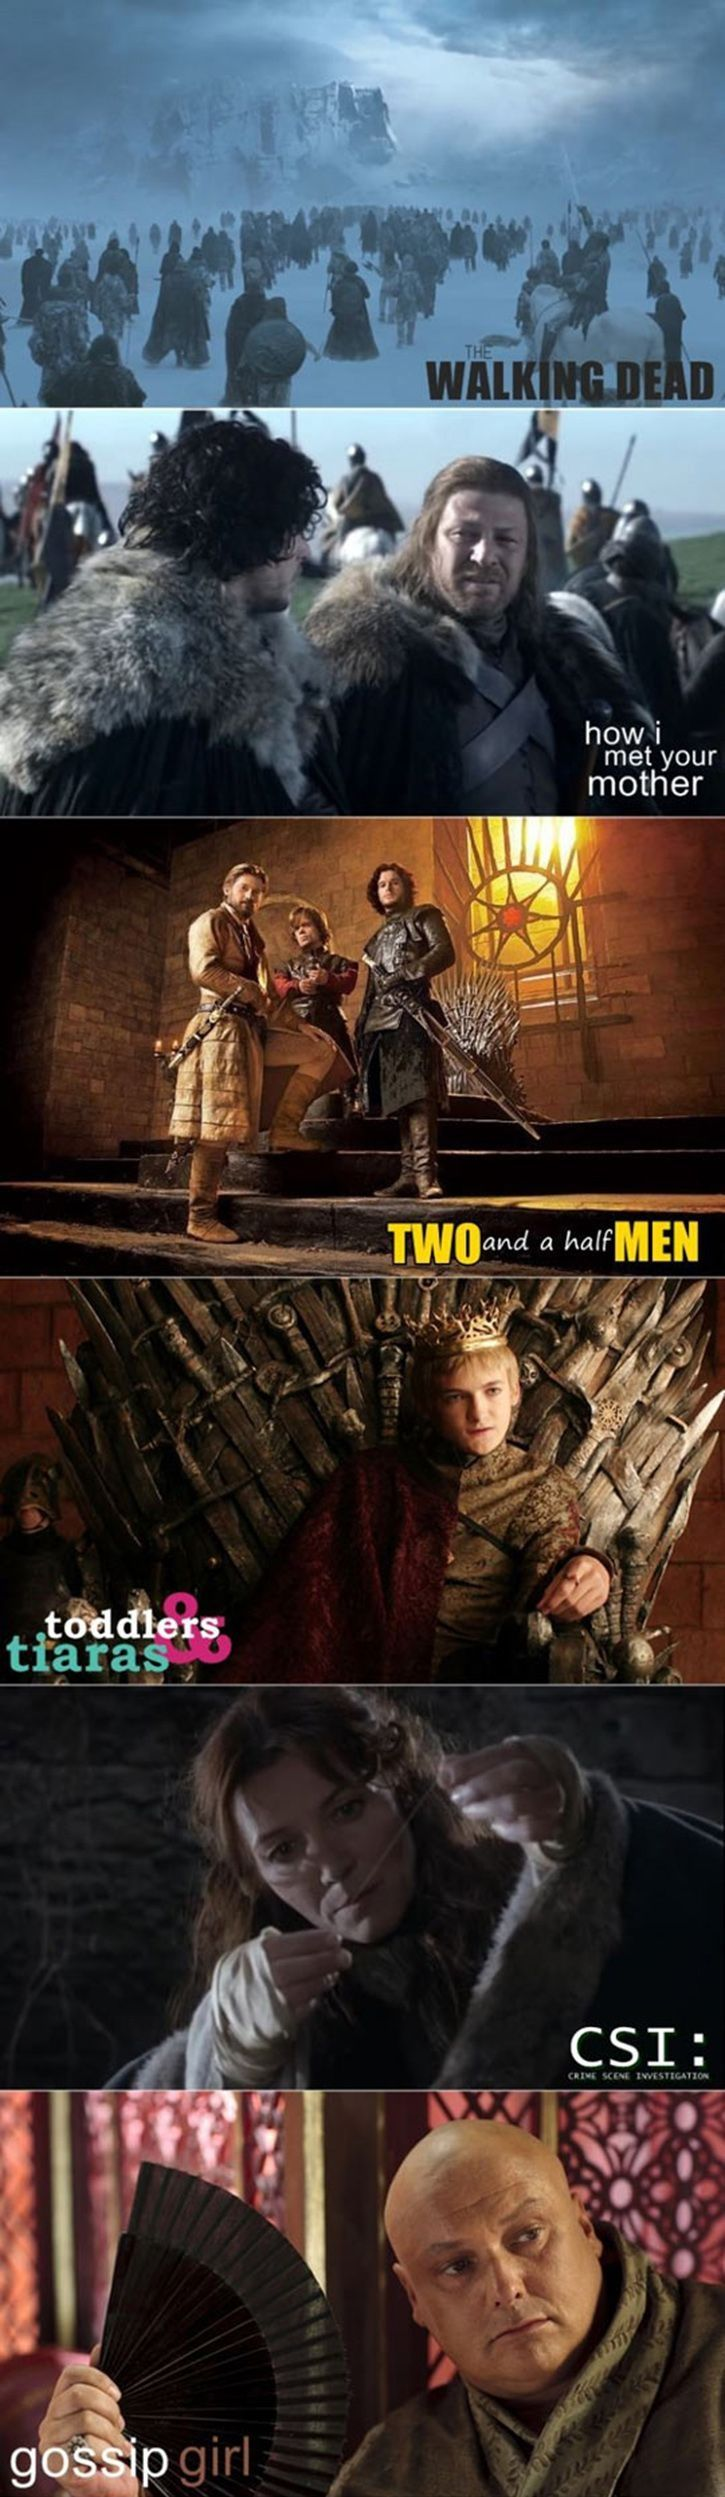 Game of Thrones reimagined as other popular TV shows. I laughed harder than I should have.